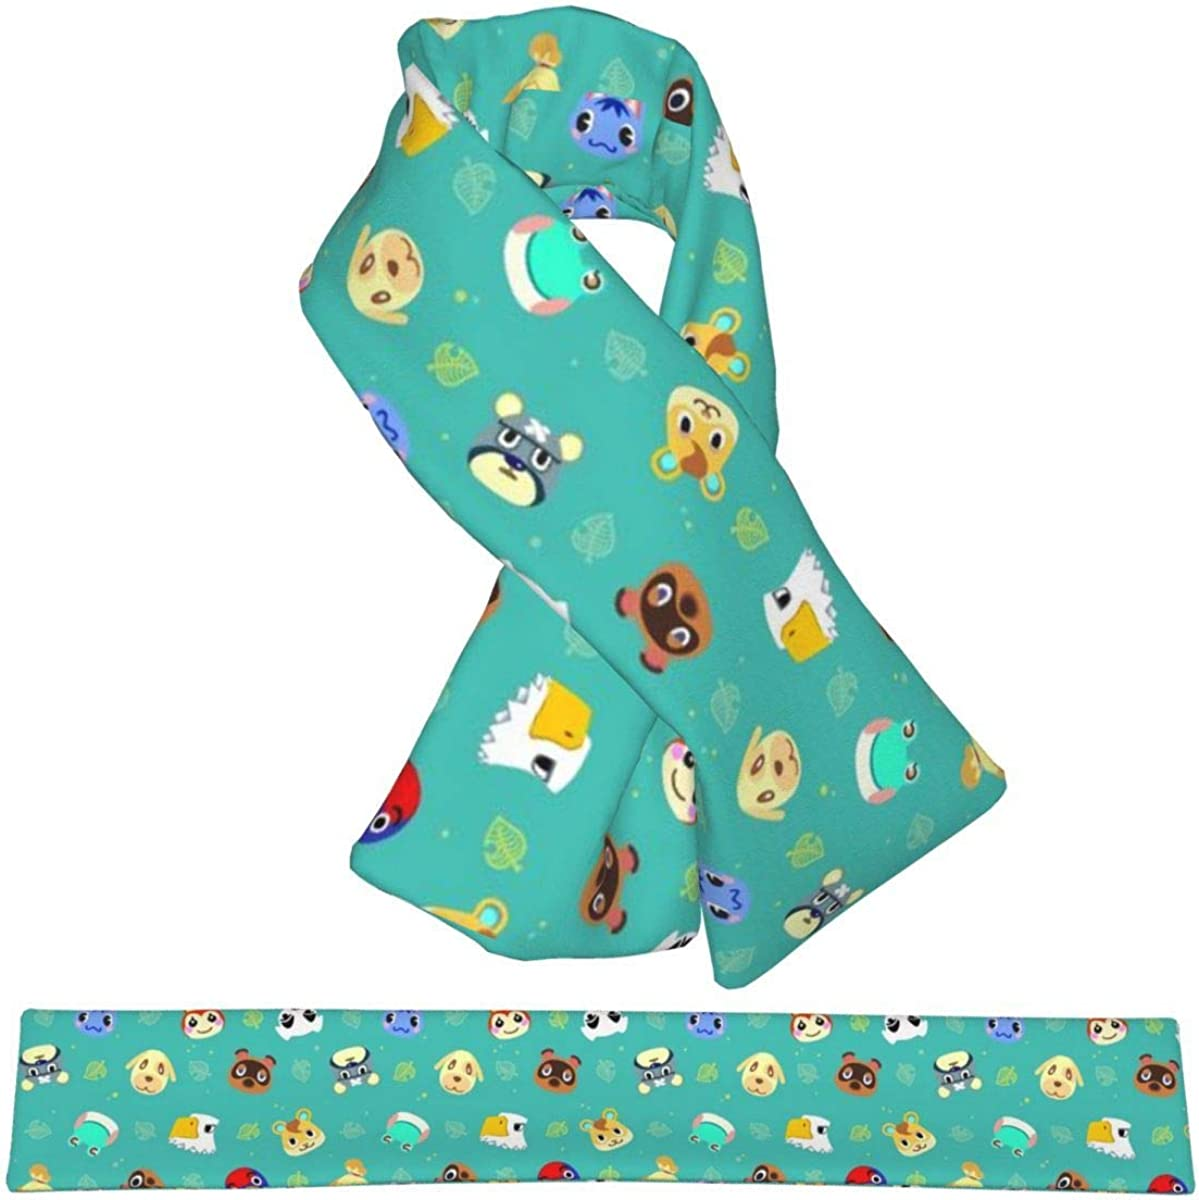 Flannel Fashion Scarf Crossing Woodpecker Animal Winter Warm Scarves With Adjustable Hole,Wraps Scarf For Women/Men/Kids